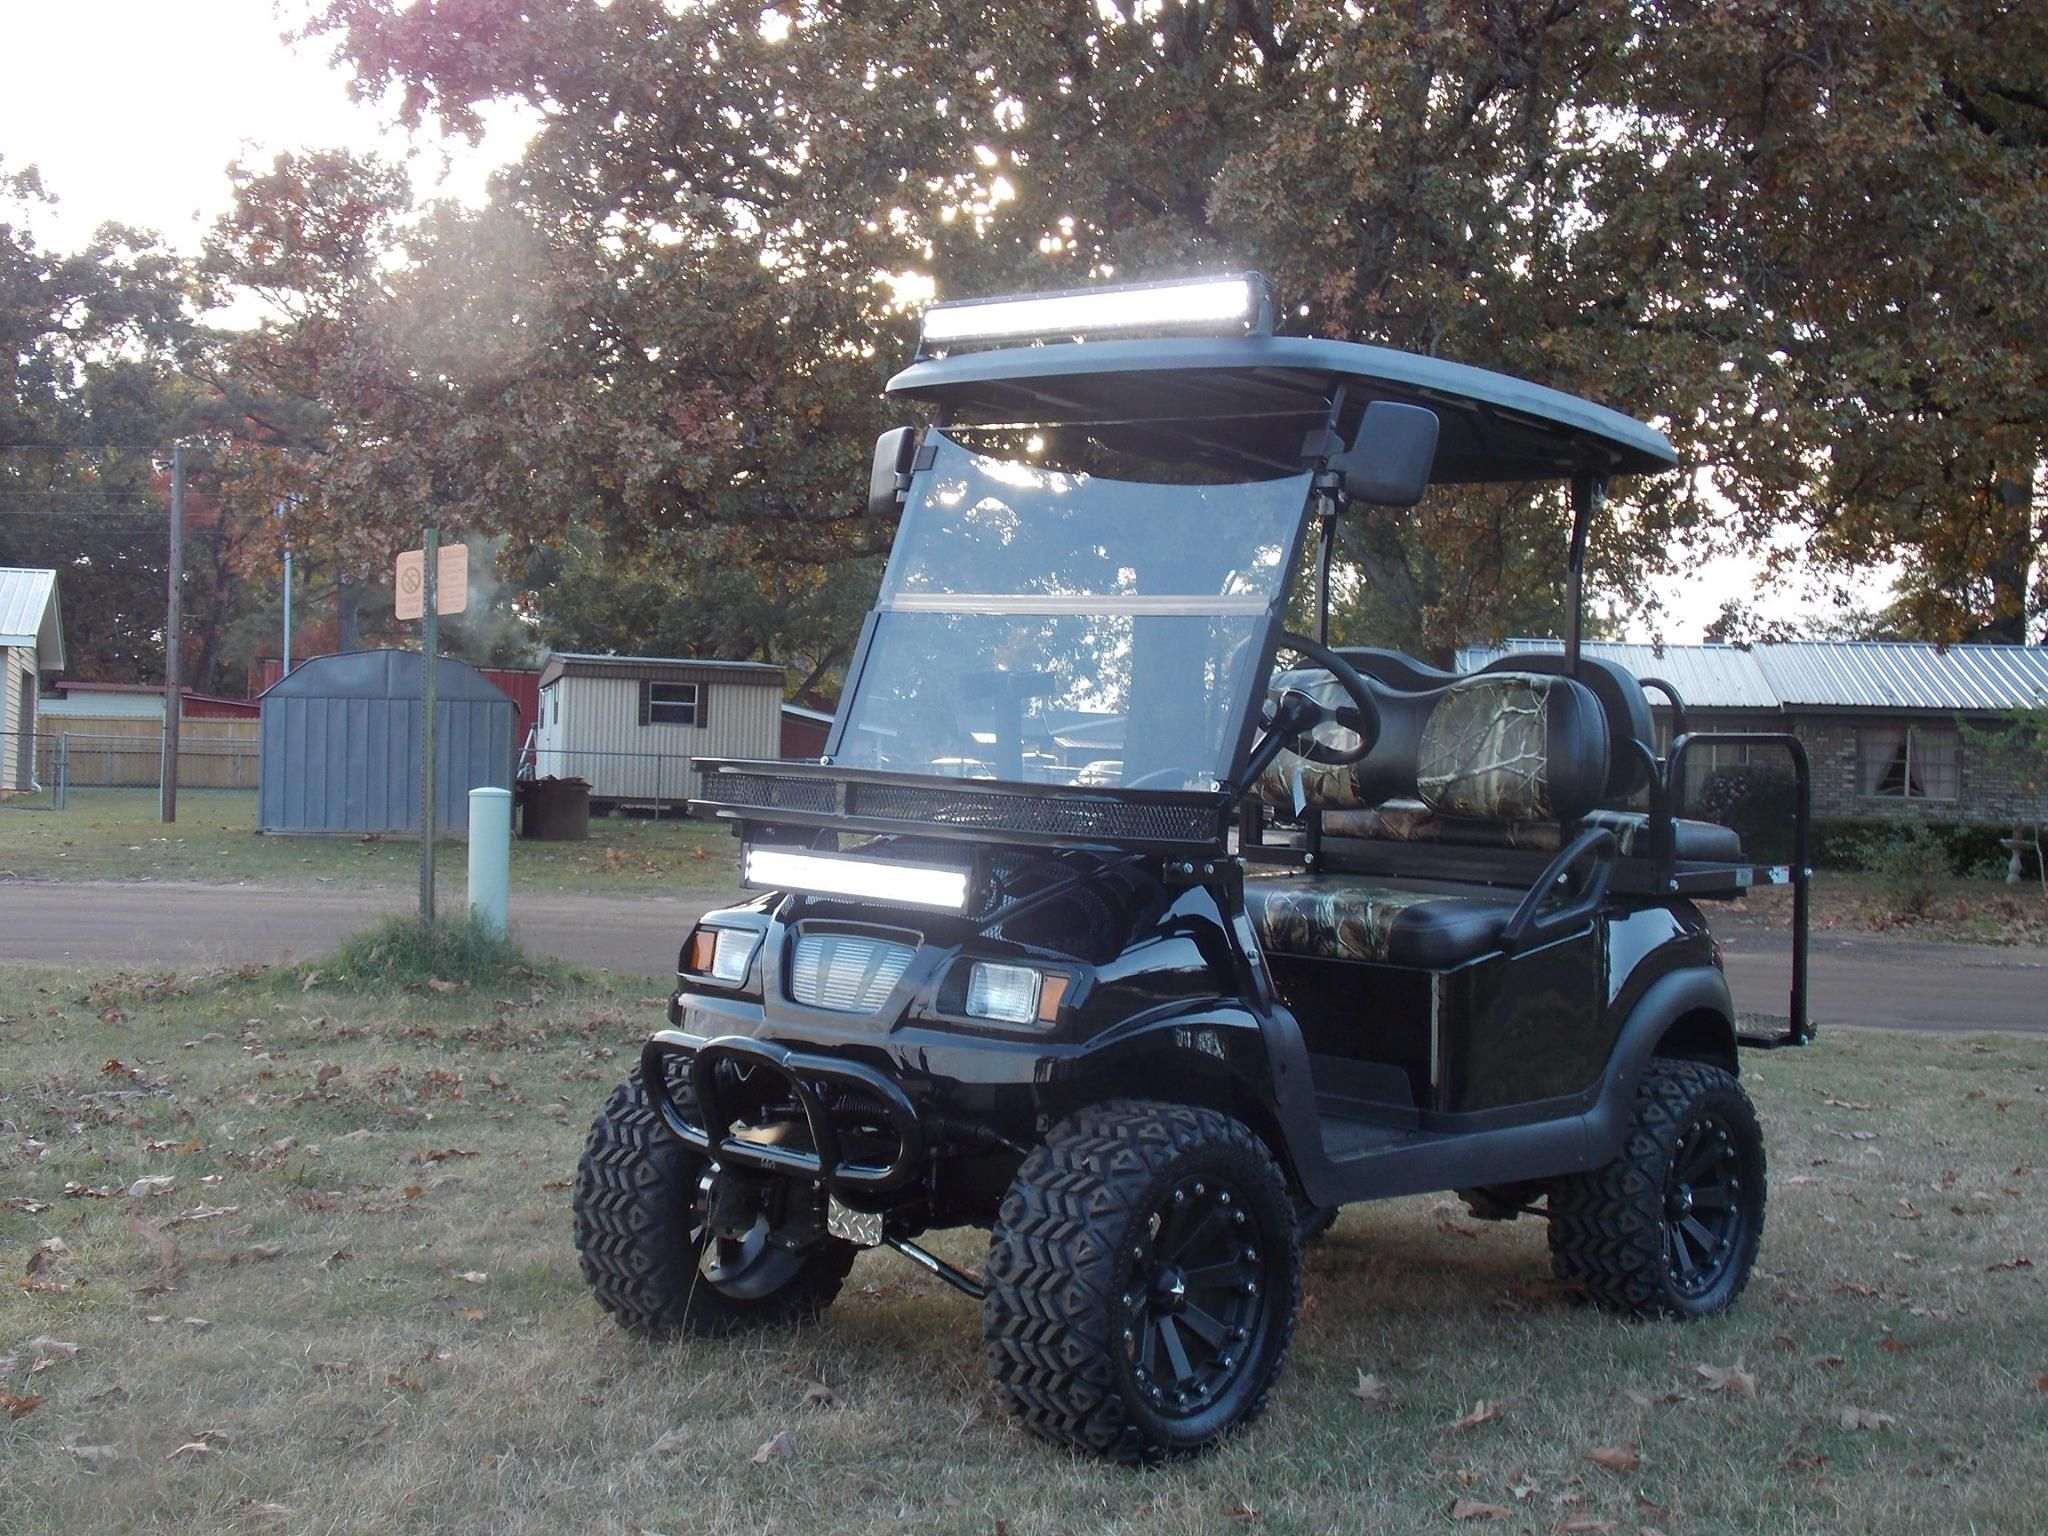 Southern Sportz 2 Limited Rock N Edition Phantom Xt Club Car Precedent 48v Electric Hunting Cart With Images All Terrain Vehicles All Terrain Tyres Golf Carts